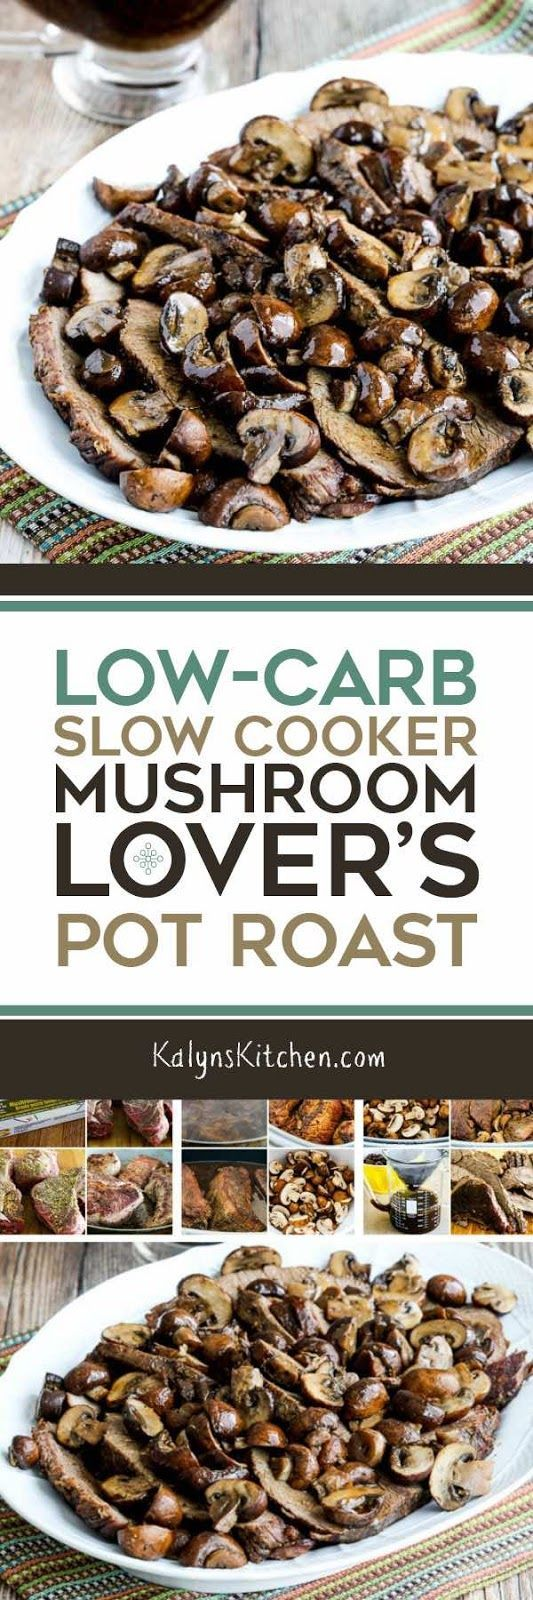 This flavorful Low-Carb Slow Cooker Mushroom Lover's Pot Roast is also Keto, low-glycemic, and South Beach Diet friendly, and with the right mushroom bouillon it can also be gluten-free, Paleo, or Whole 30. [found on KalynsKitchen.com]